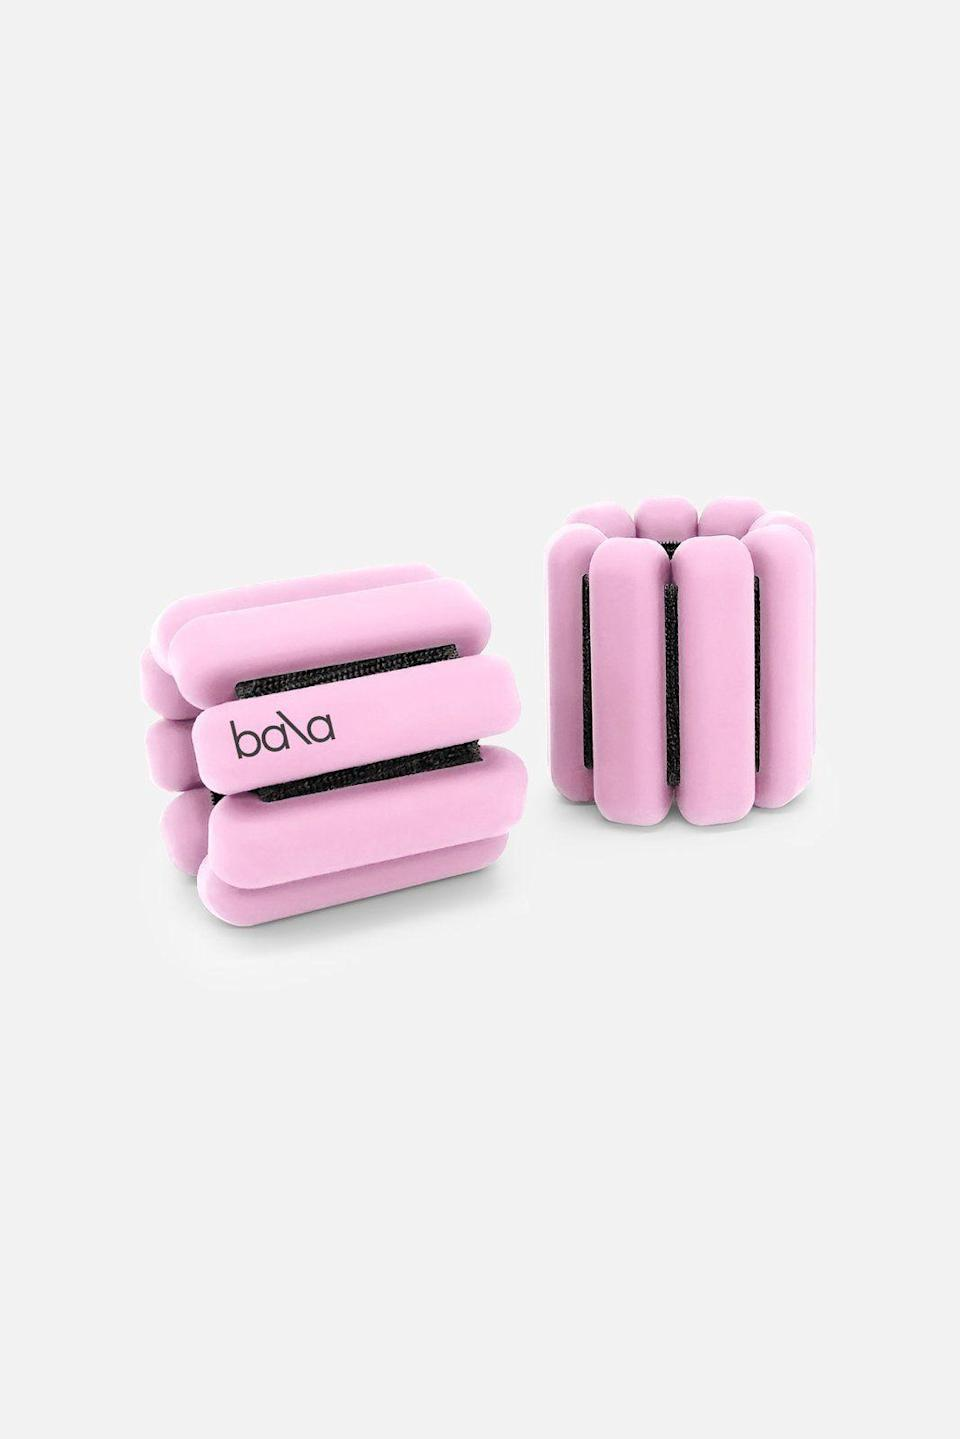 """<p><strong>Bala </strong></p><p>bandier.com</p><p><strong>$65.00</strong></p><p><a href=""""https://go.redirectingat.com?id=74968X1596630&url=https%3A%2F%2Fwww.bandier.com%2Fproducts%2Fbala-2lb-weight-red%3FrefSrc%3D4410781597730%26nosto%3Dproductpage-nosto-1-testing%26variant%3D32125353984034&sref=https%3A%2F%2Fwww.harpersbazaar.com%2Fbeauty%2Fhealth%2Fg23900366%2Fbest-fitness-gifts-ideas%2F"""" rel=""""nofollow noopener"""" target=""""_blank"""" data-ylk=""""slk:Shop Now"""" class=""""link rapid-noclick-resp"""">Shop Now</a></p><p>These weighted wrist bangles are fully adjustable and can add extra oomph to typical workouts (or even just a walk).</p>"""